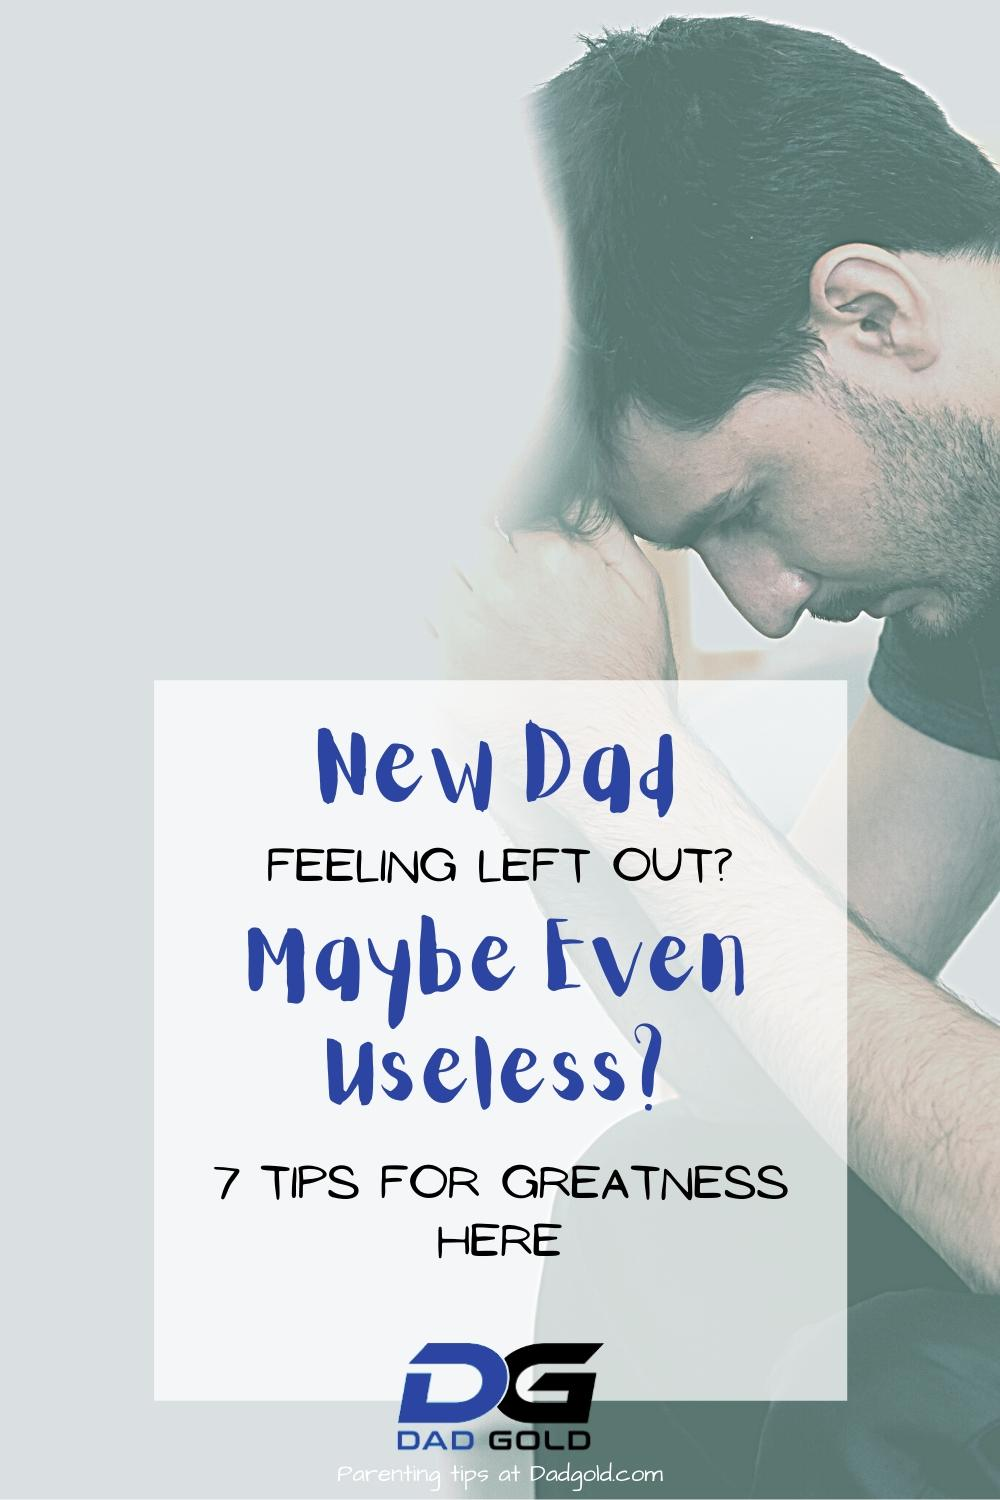 New Dad Feeling Left Out Or Useless